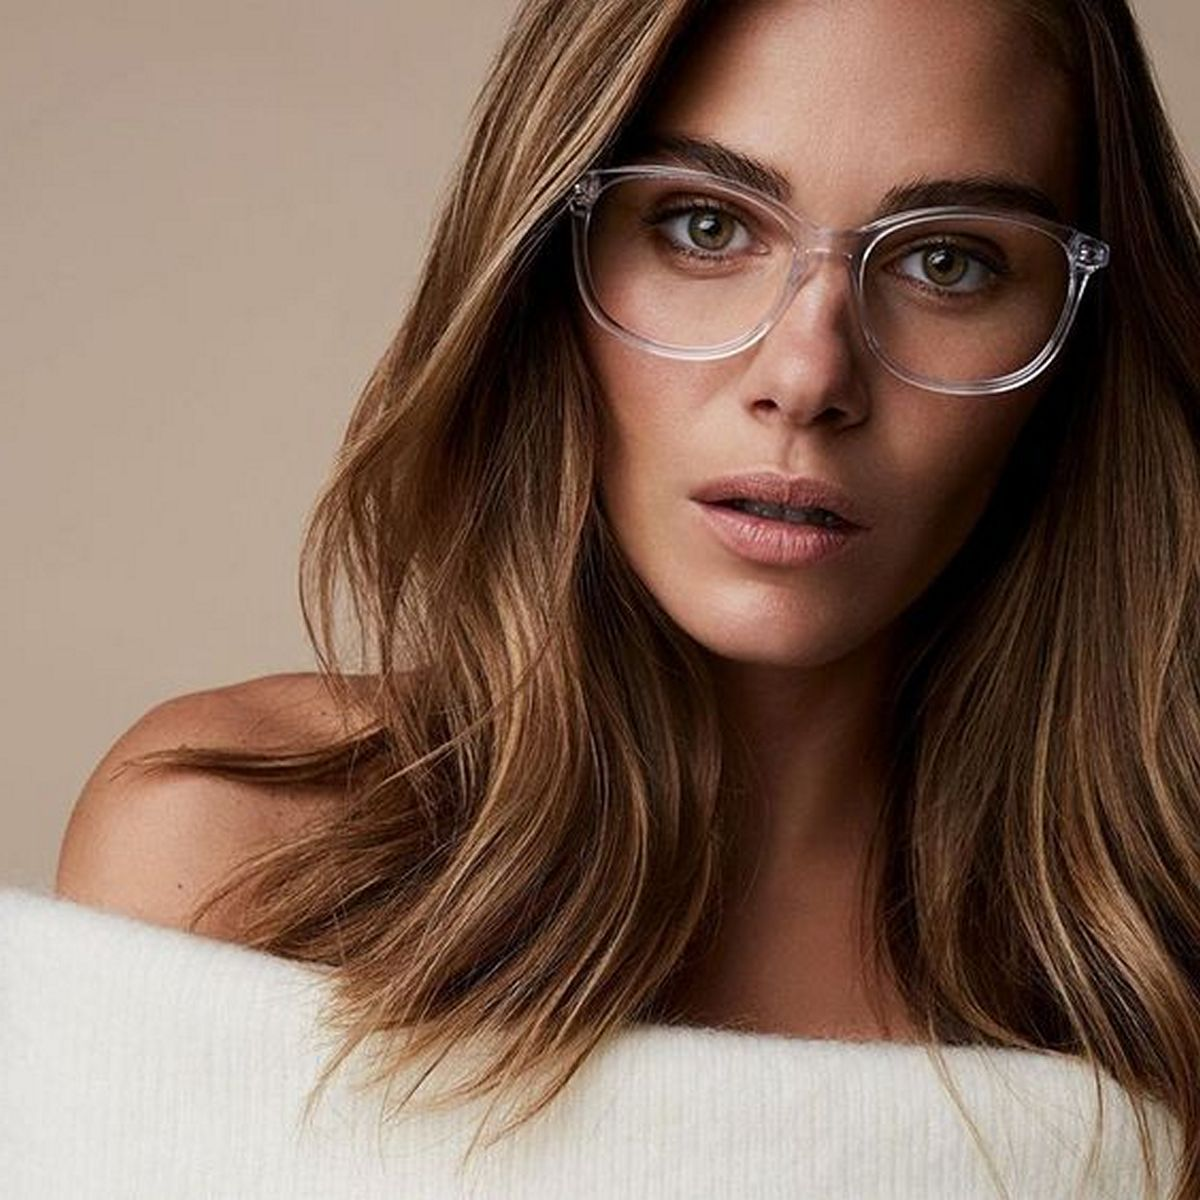 eff945d39c Favorite 51 Clear Glasses Frame for Women s Fashion Ideas